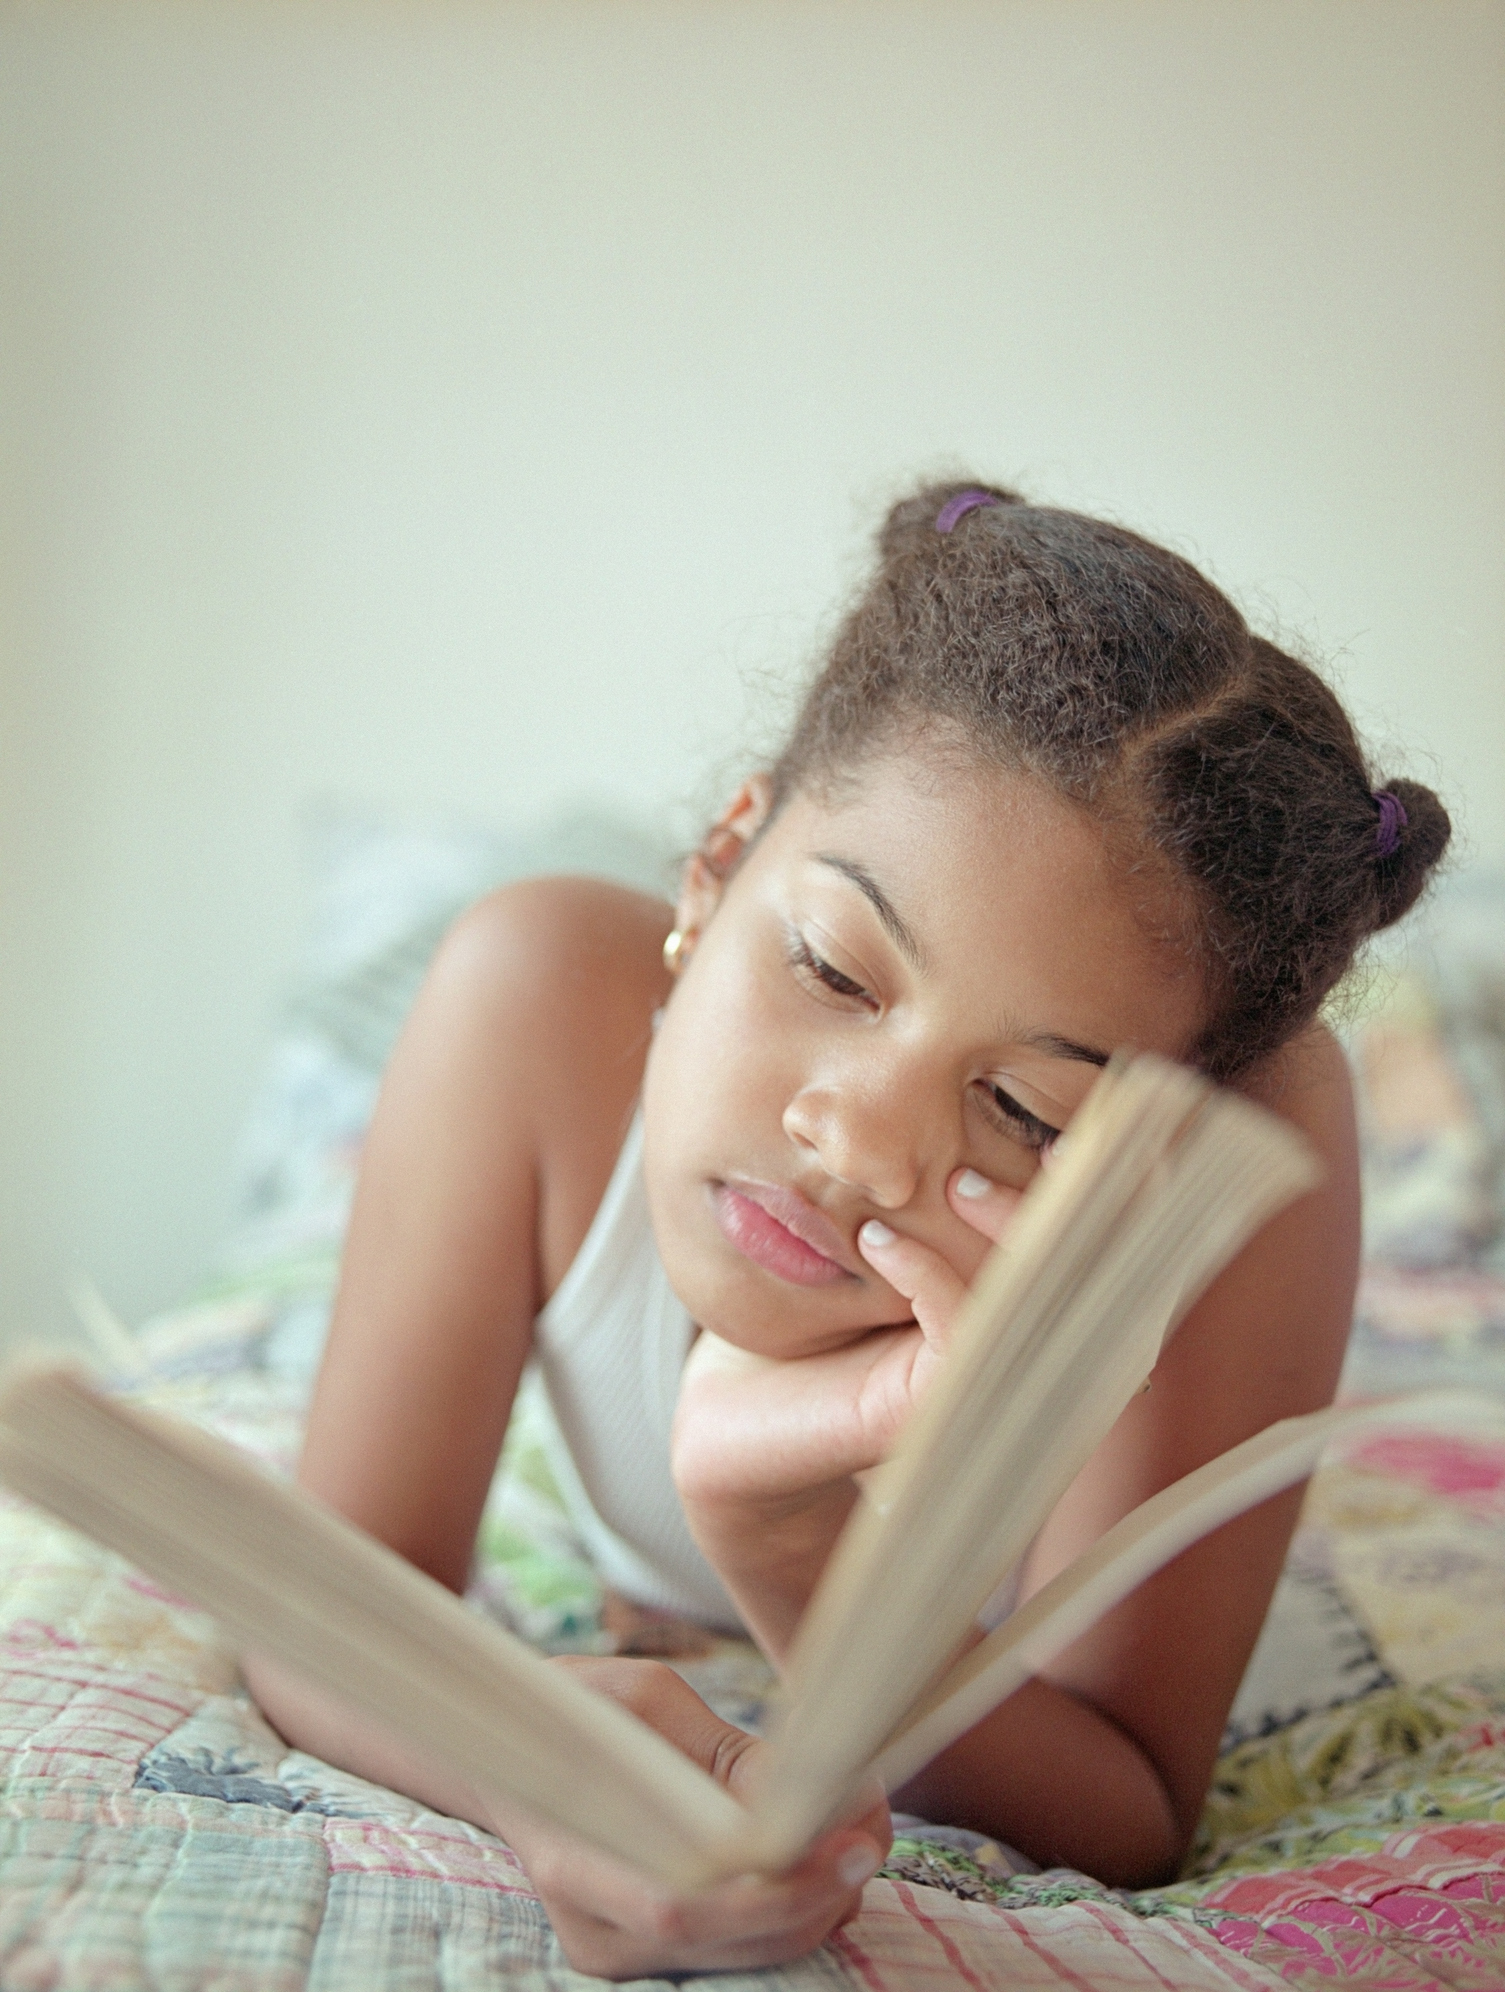 younggirlreading.jpg